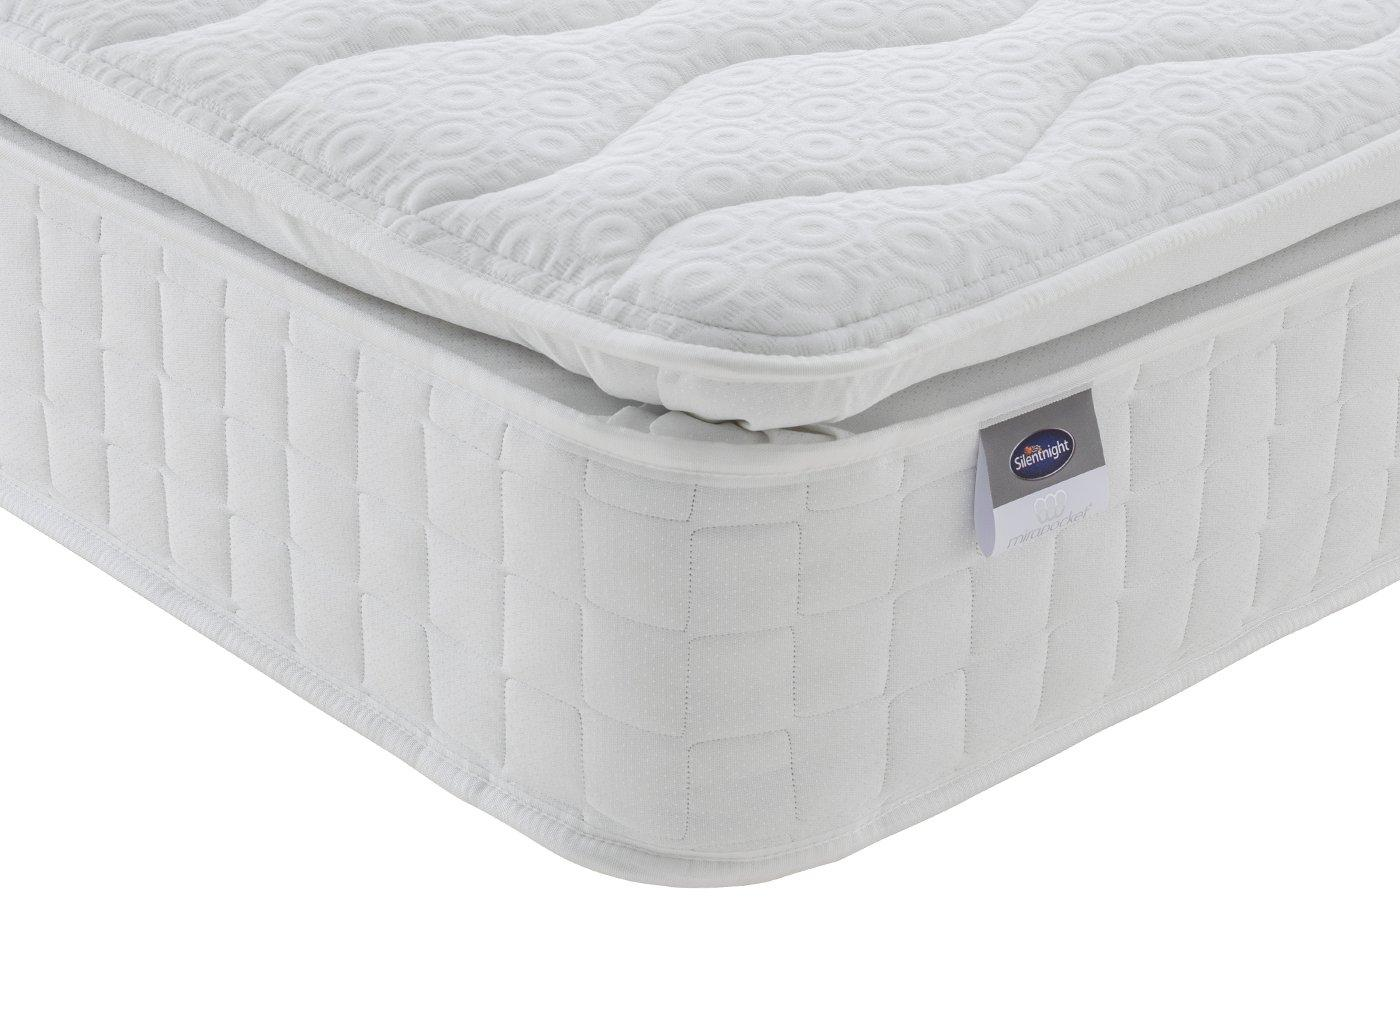 Silentnight Newbury 4'0 Mattress 4'0 Small double